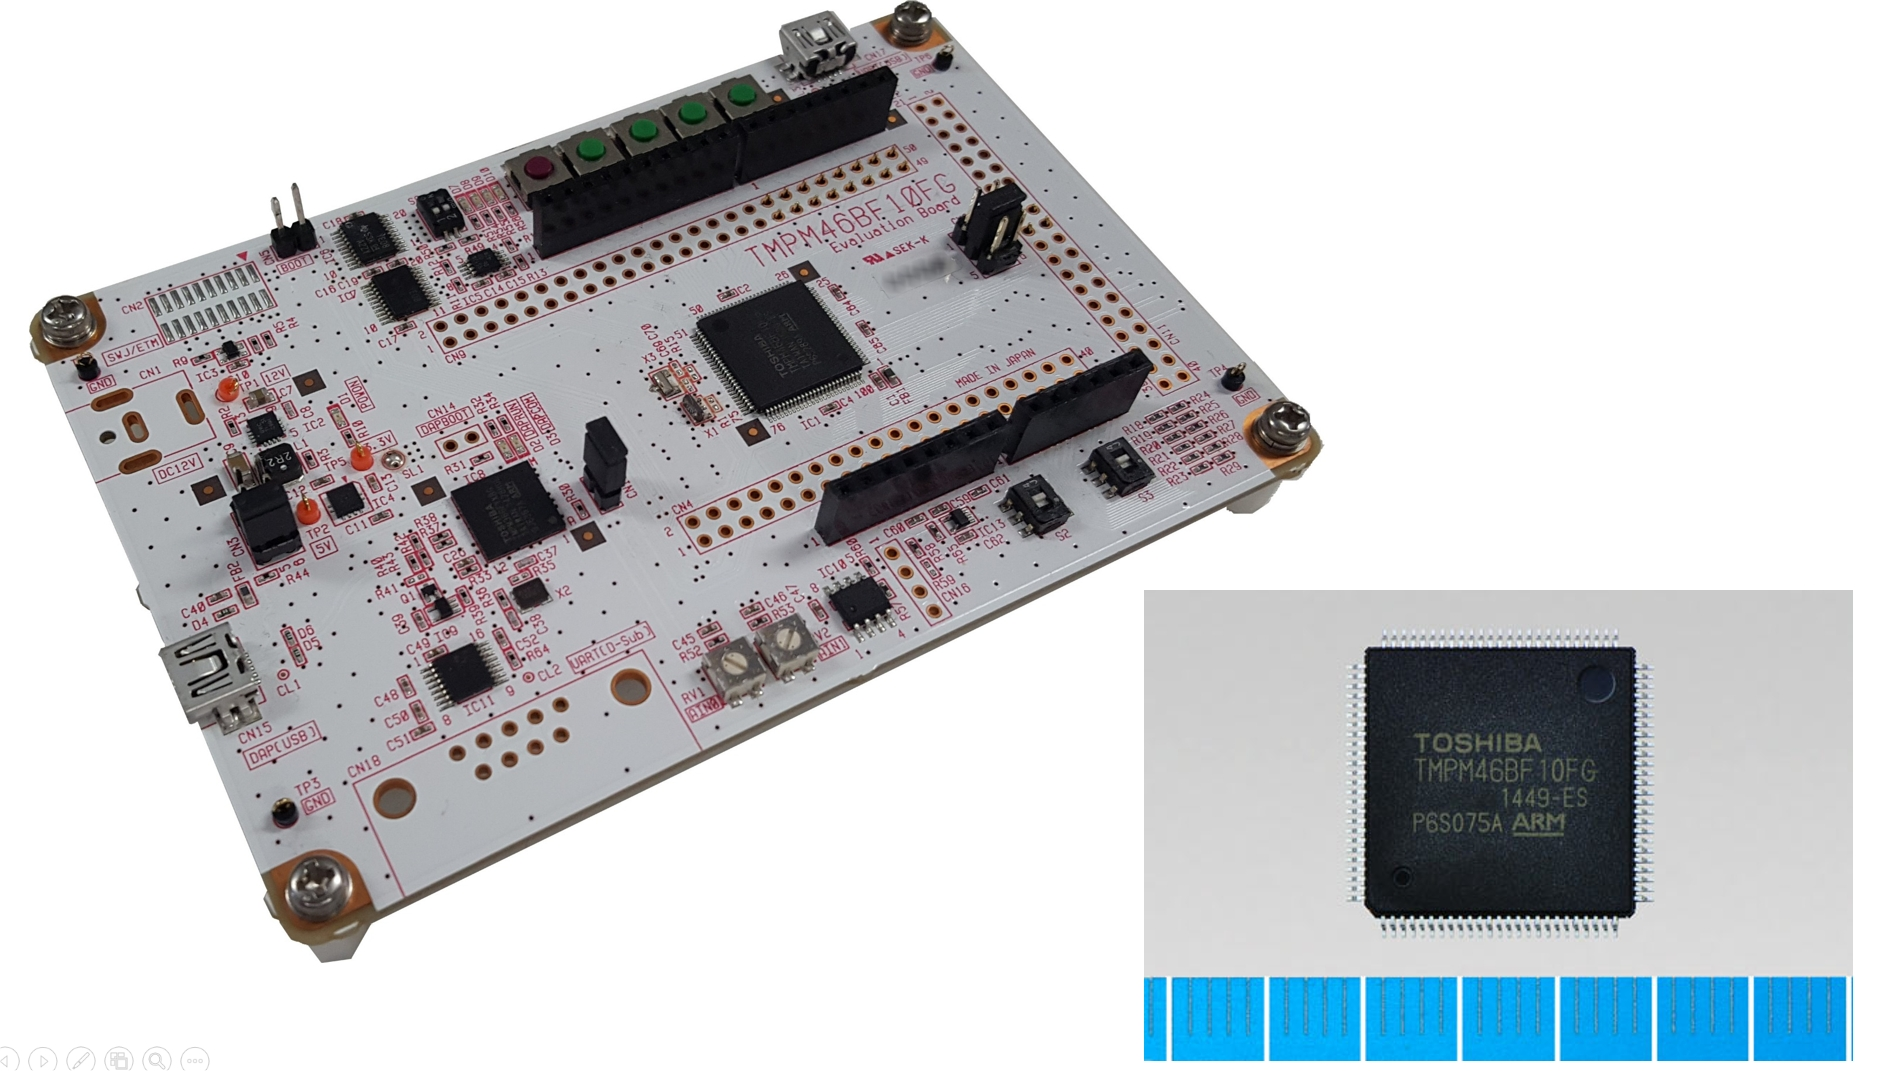 Toshiba's Arm® Cortex®-M Core-Based Microcontrollers Support